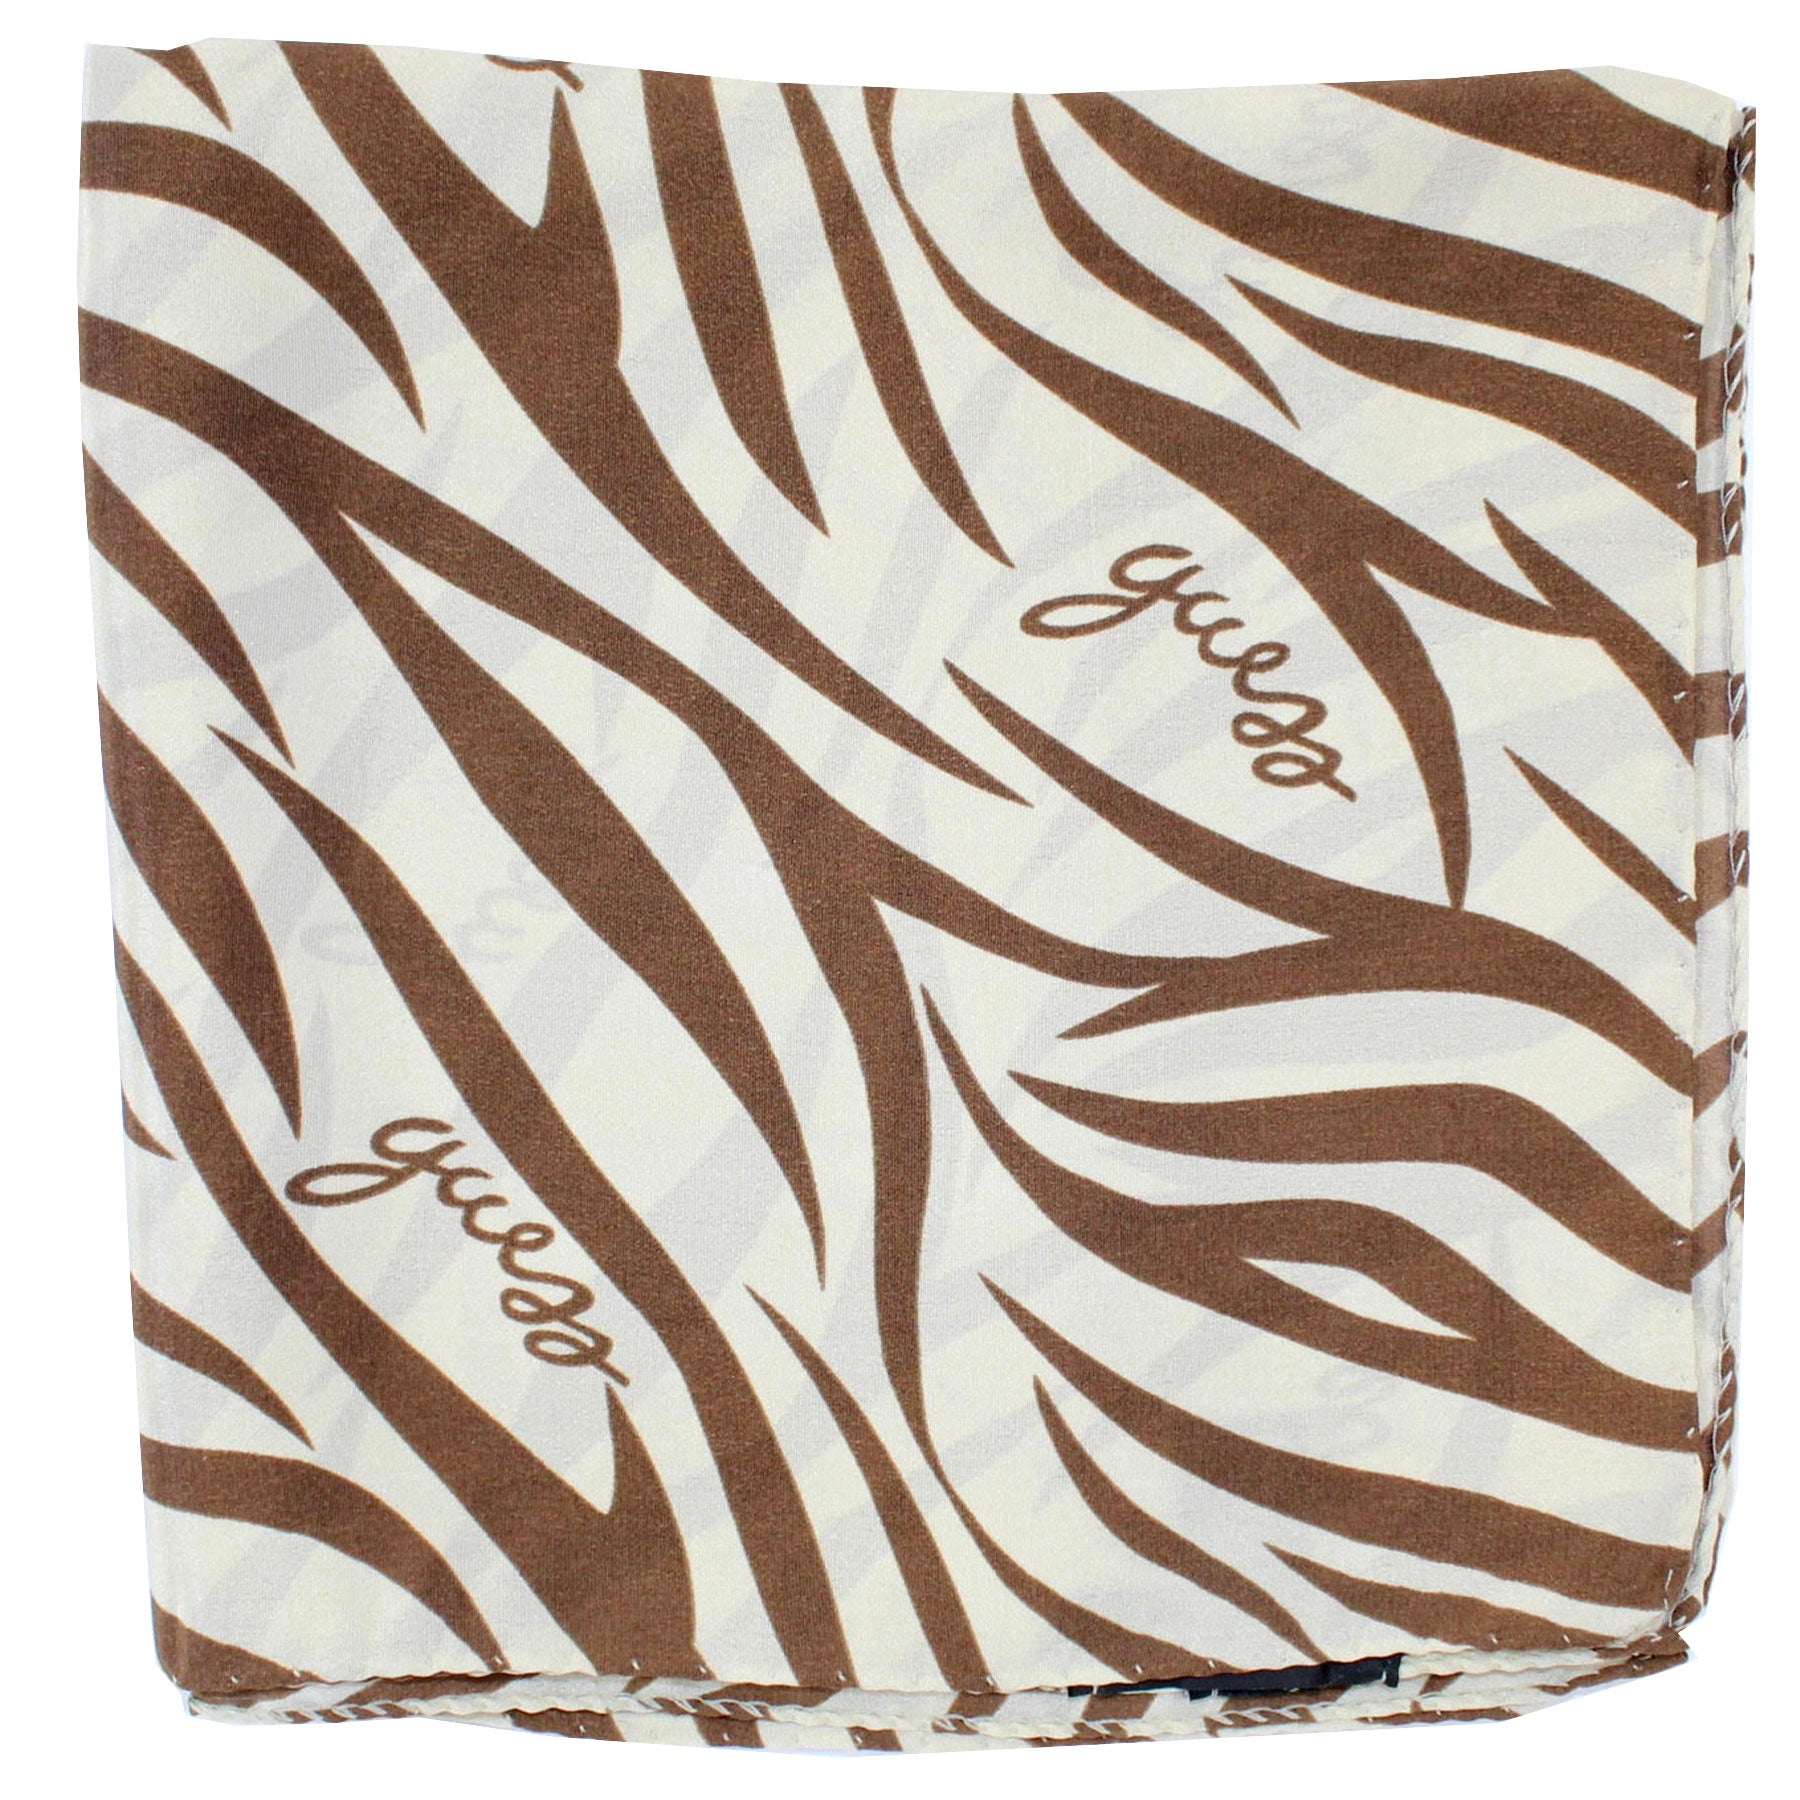 Guess Scarf Brown Cream Zebra Design - Large Square Silk Foulard